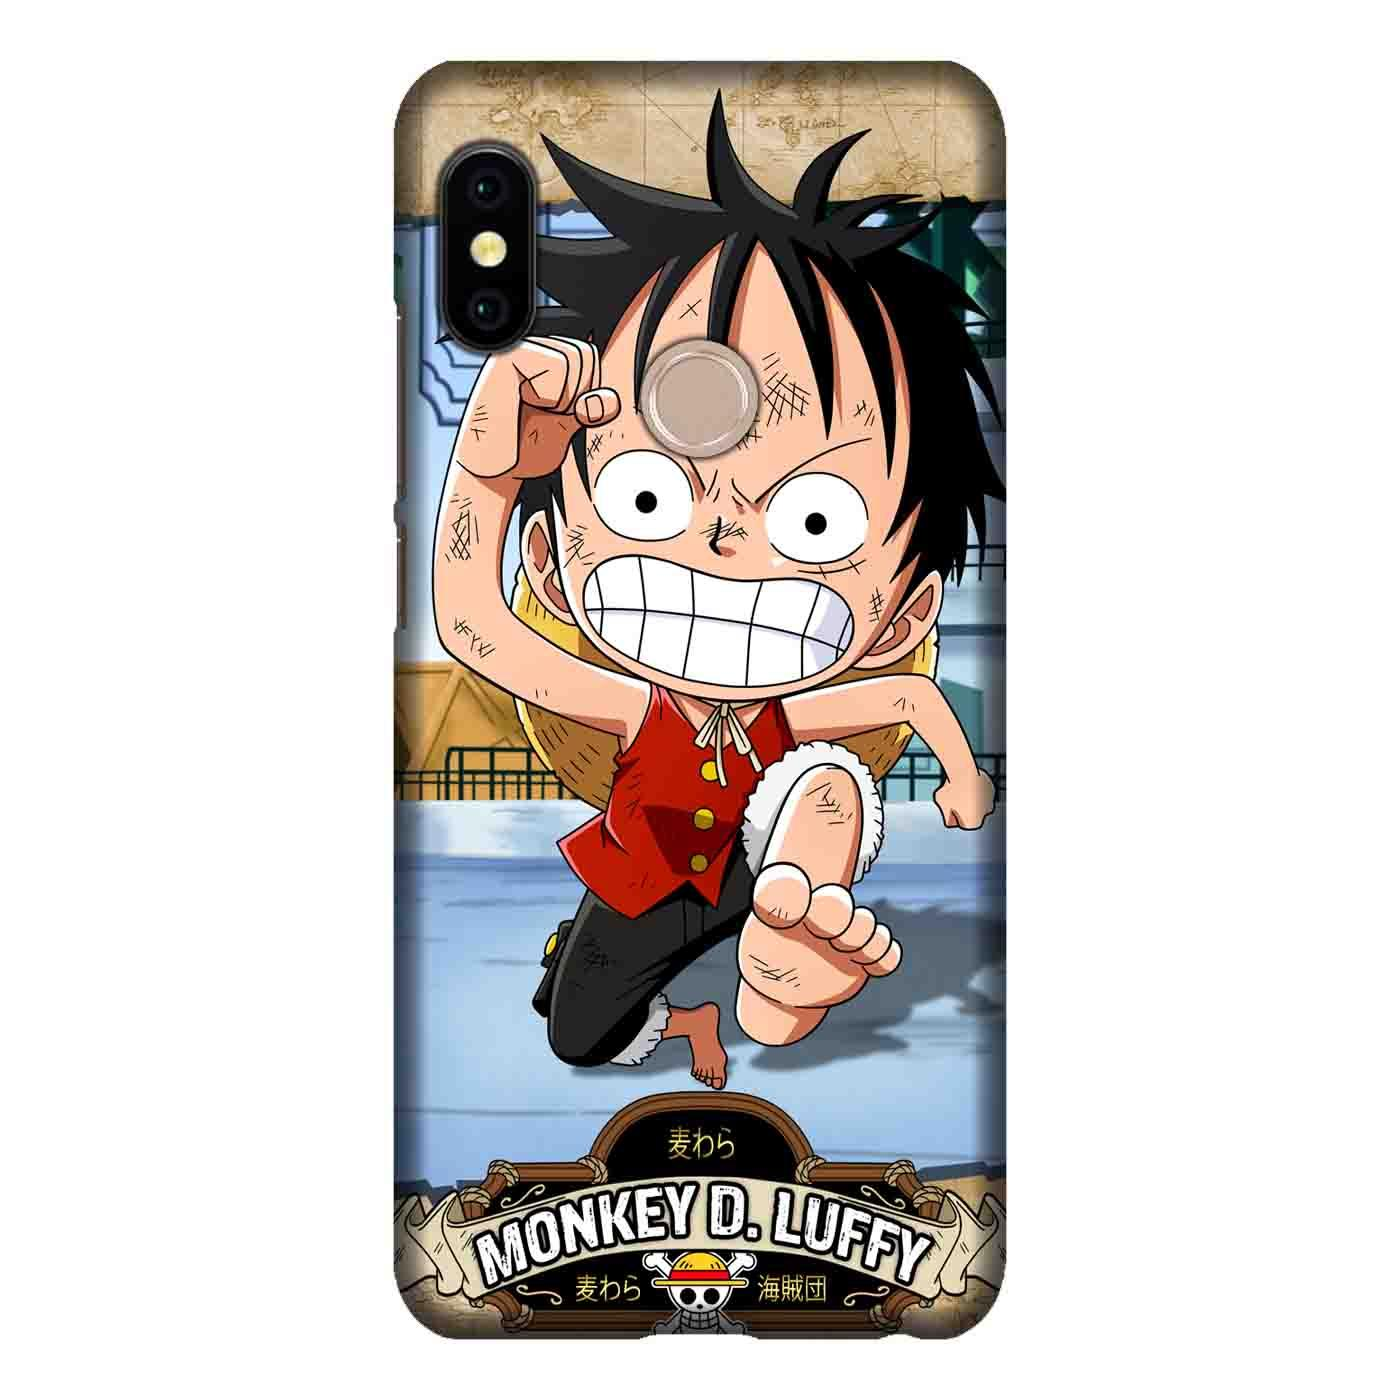 e Piece Luffy 10 Casing Custom Hardcase Full Print Case Xiaomi Redmi S2 Cover